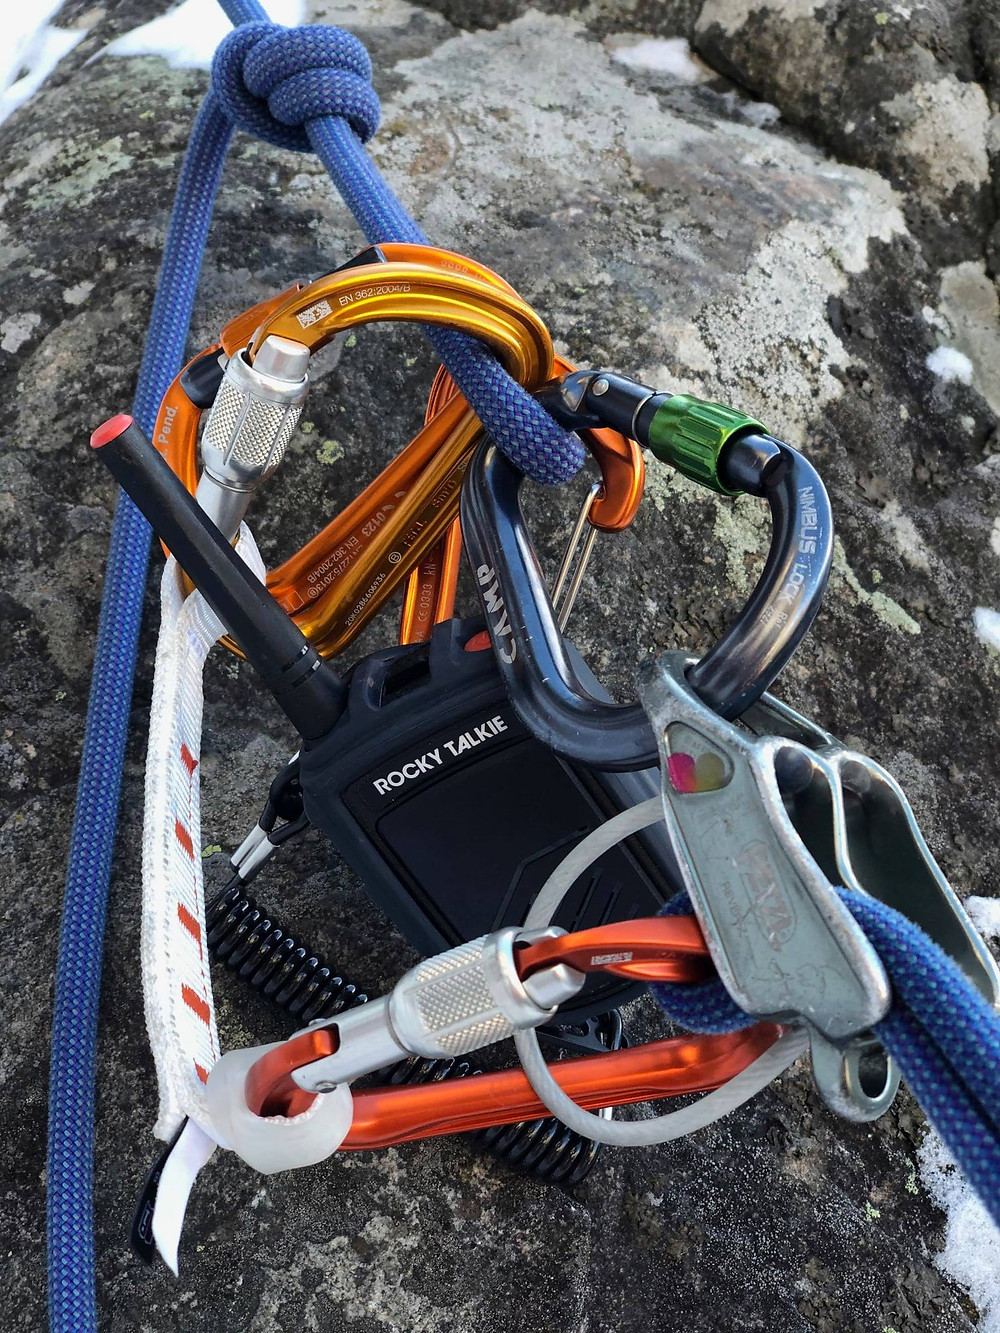 Gear every climber should have